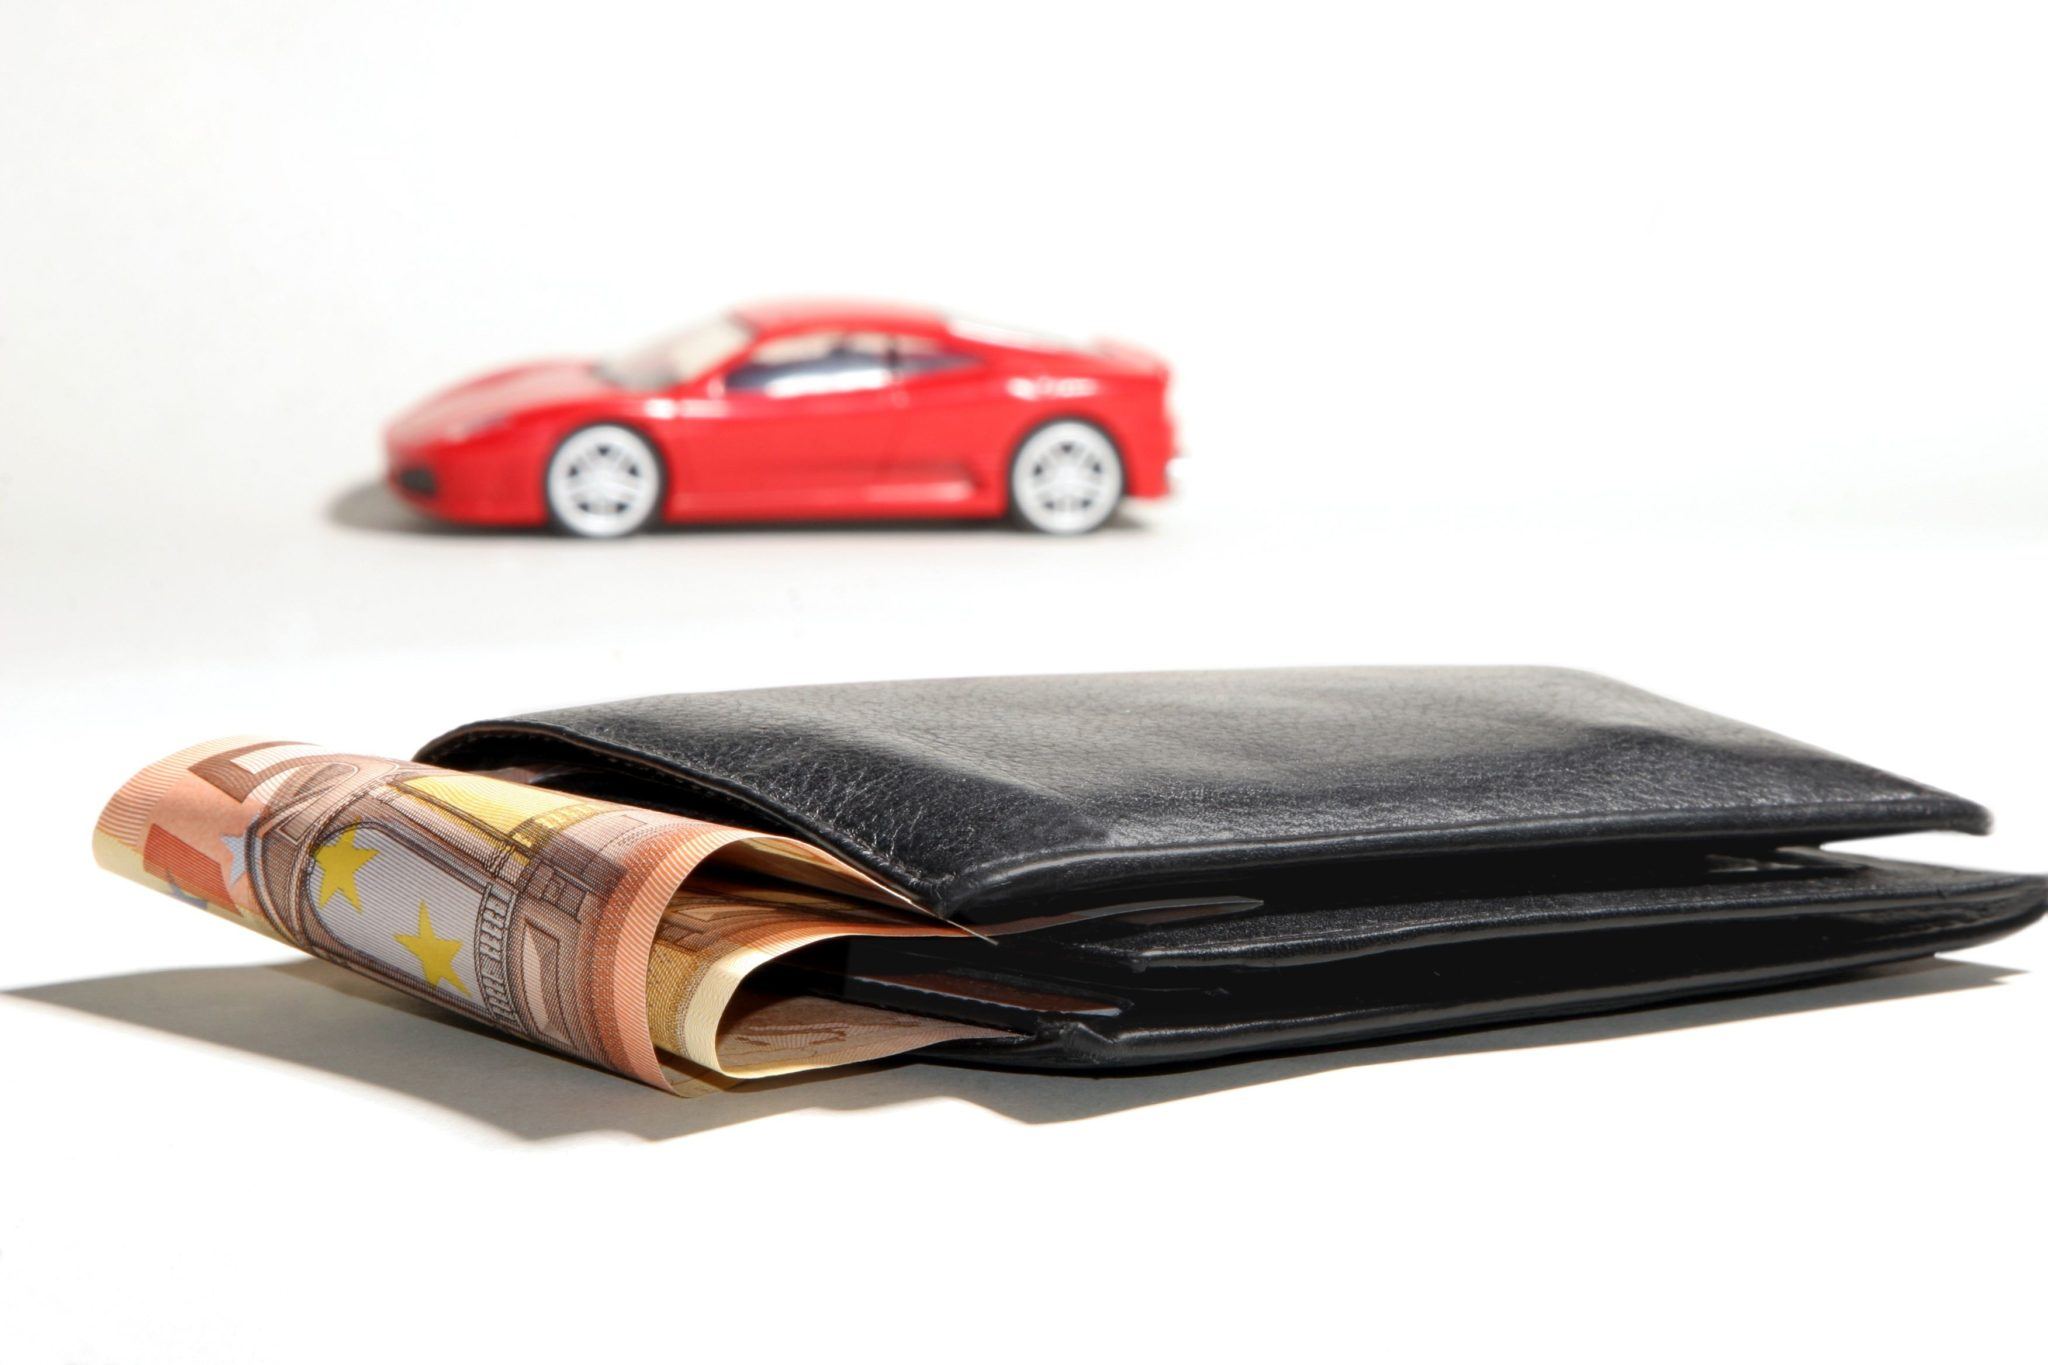 personal car loan, dealer finance, mortgage brokers, finance brokers